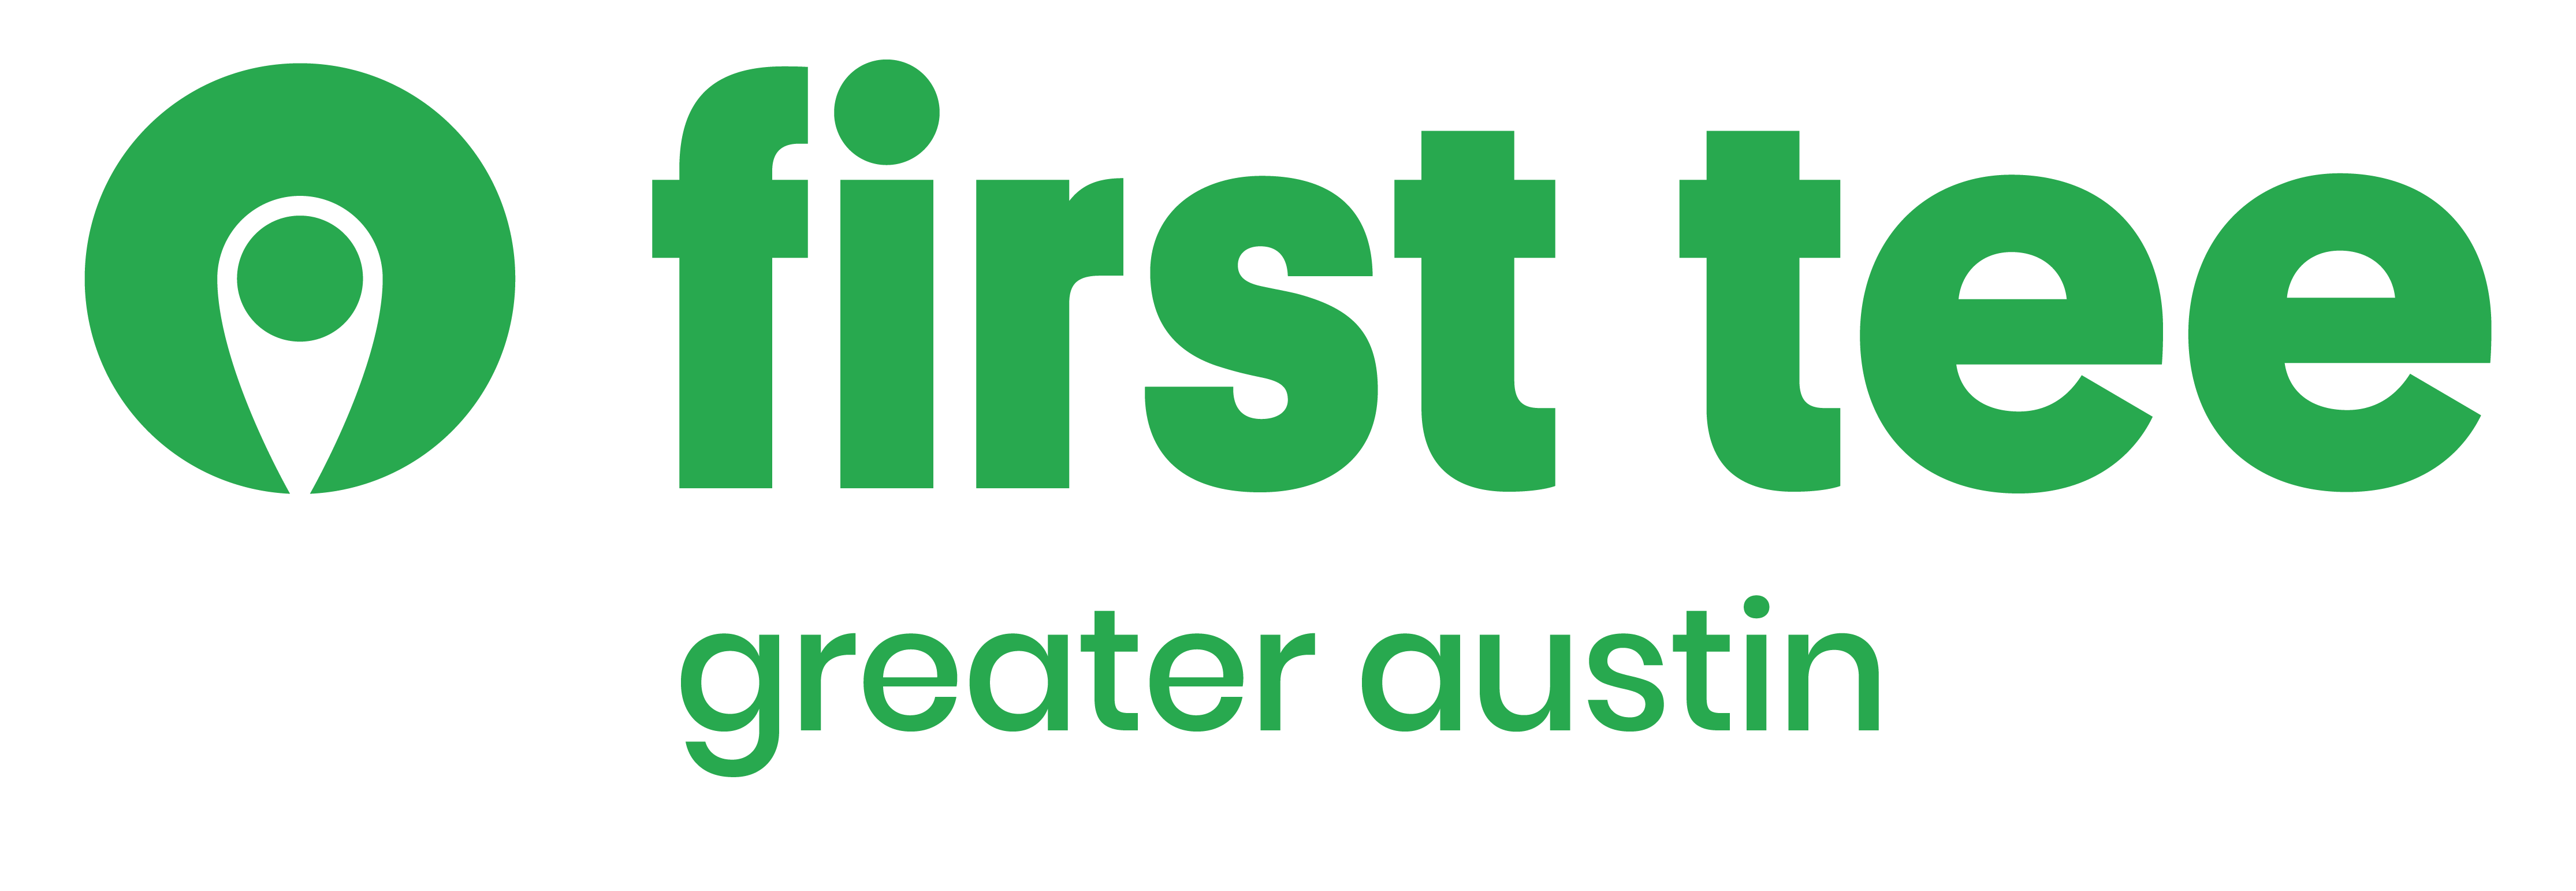 First Tee Greater Austin new logo